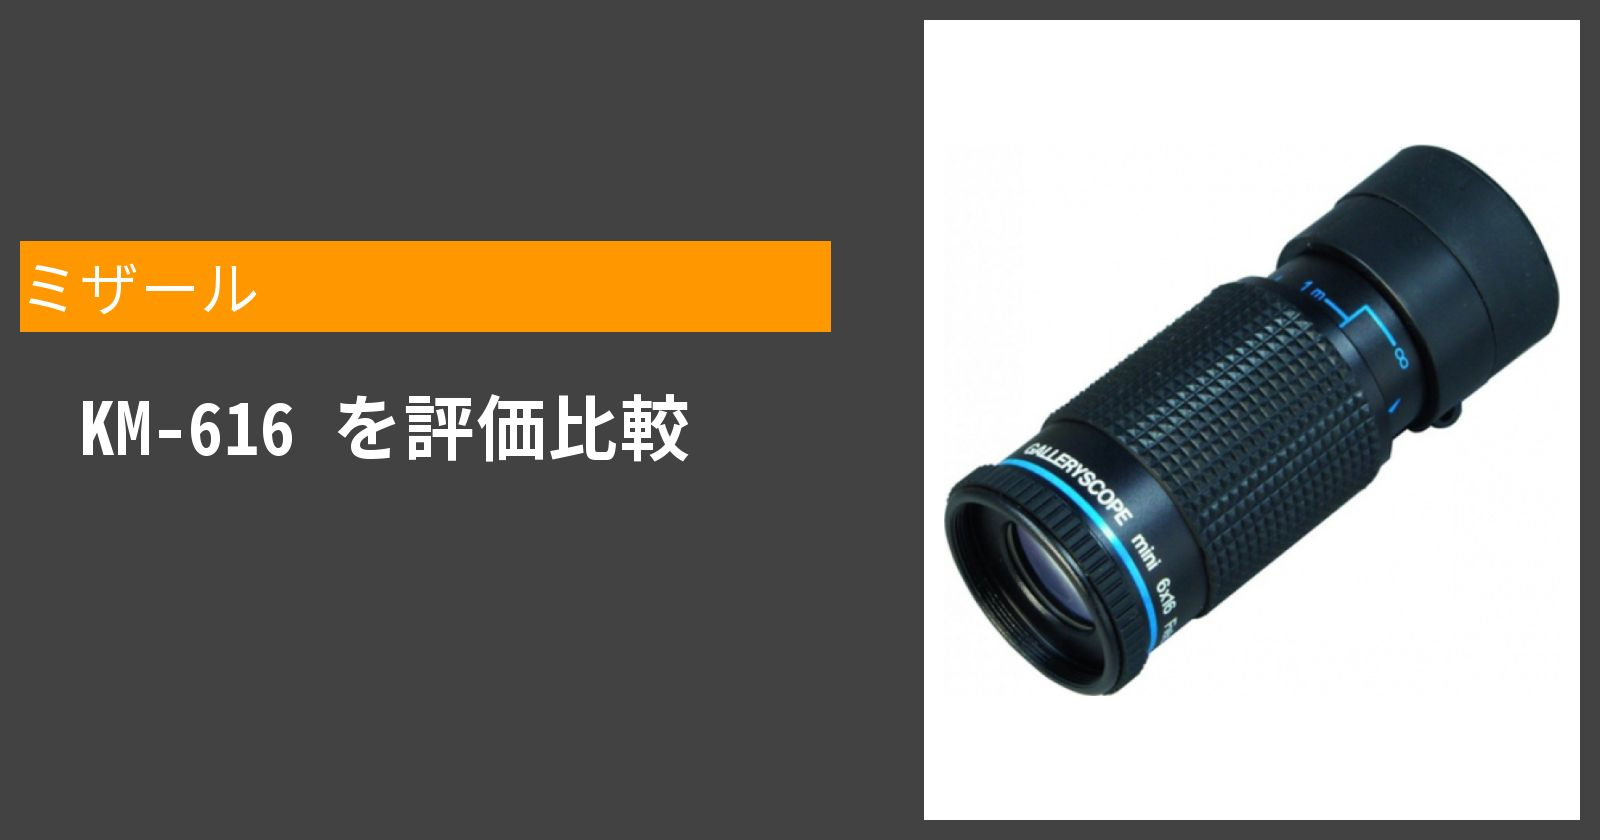 KM-616を徹底評価